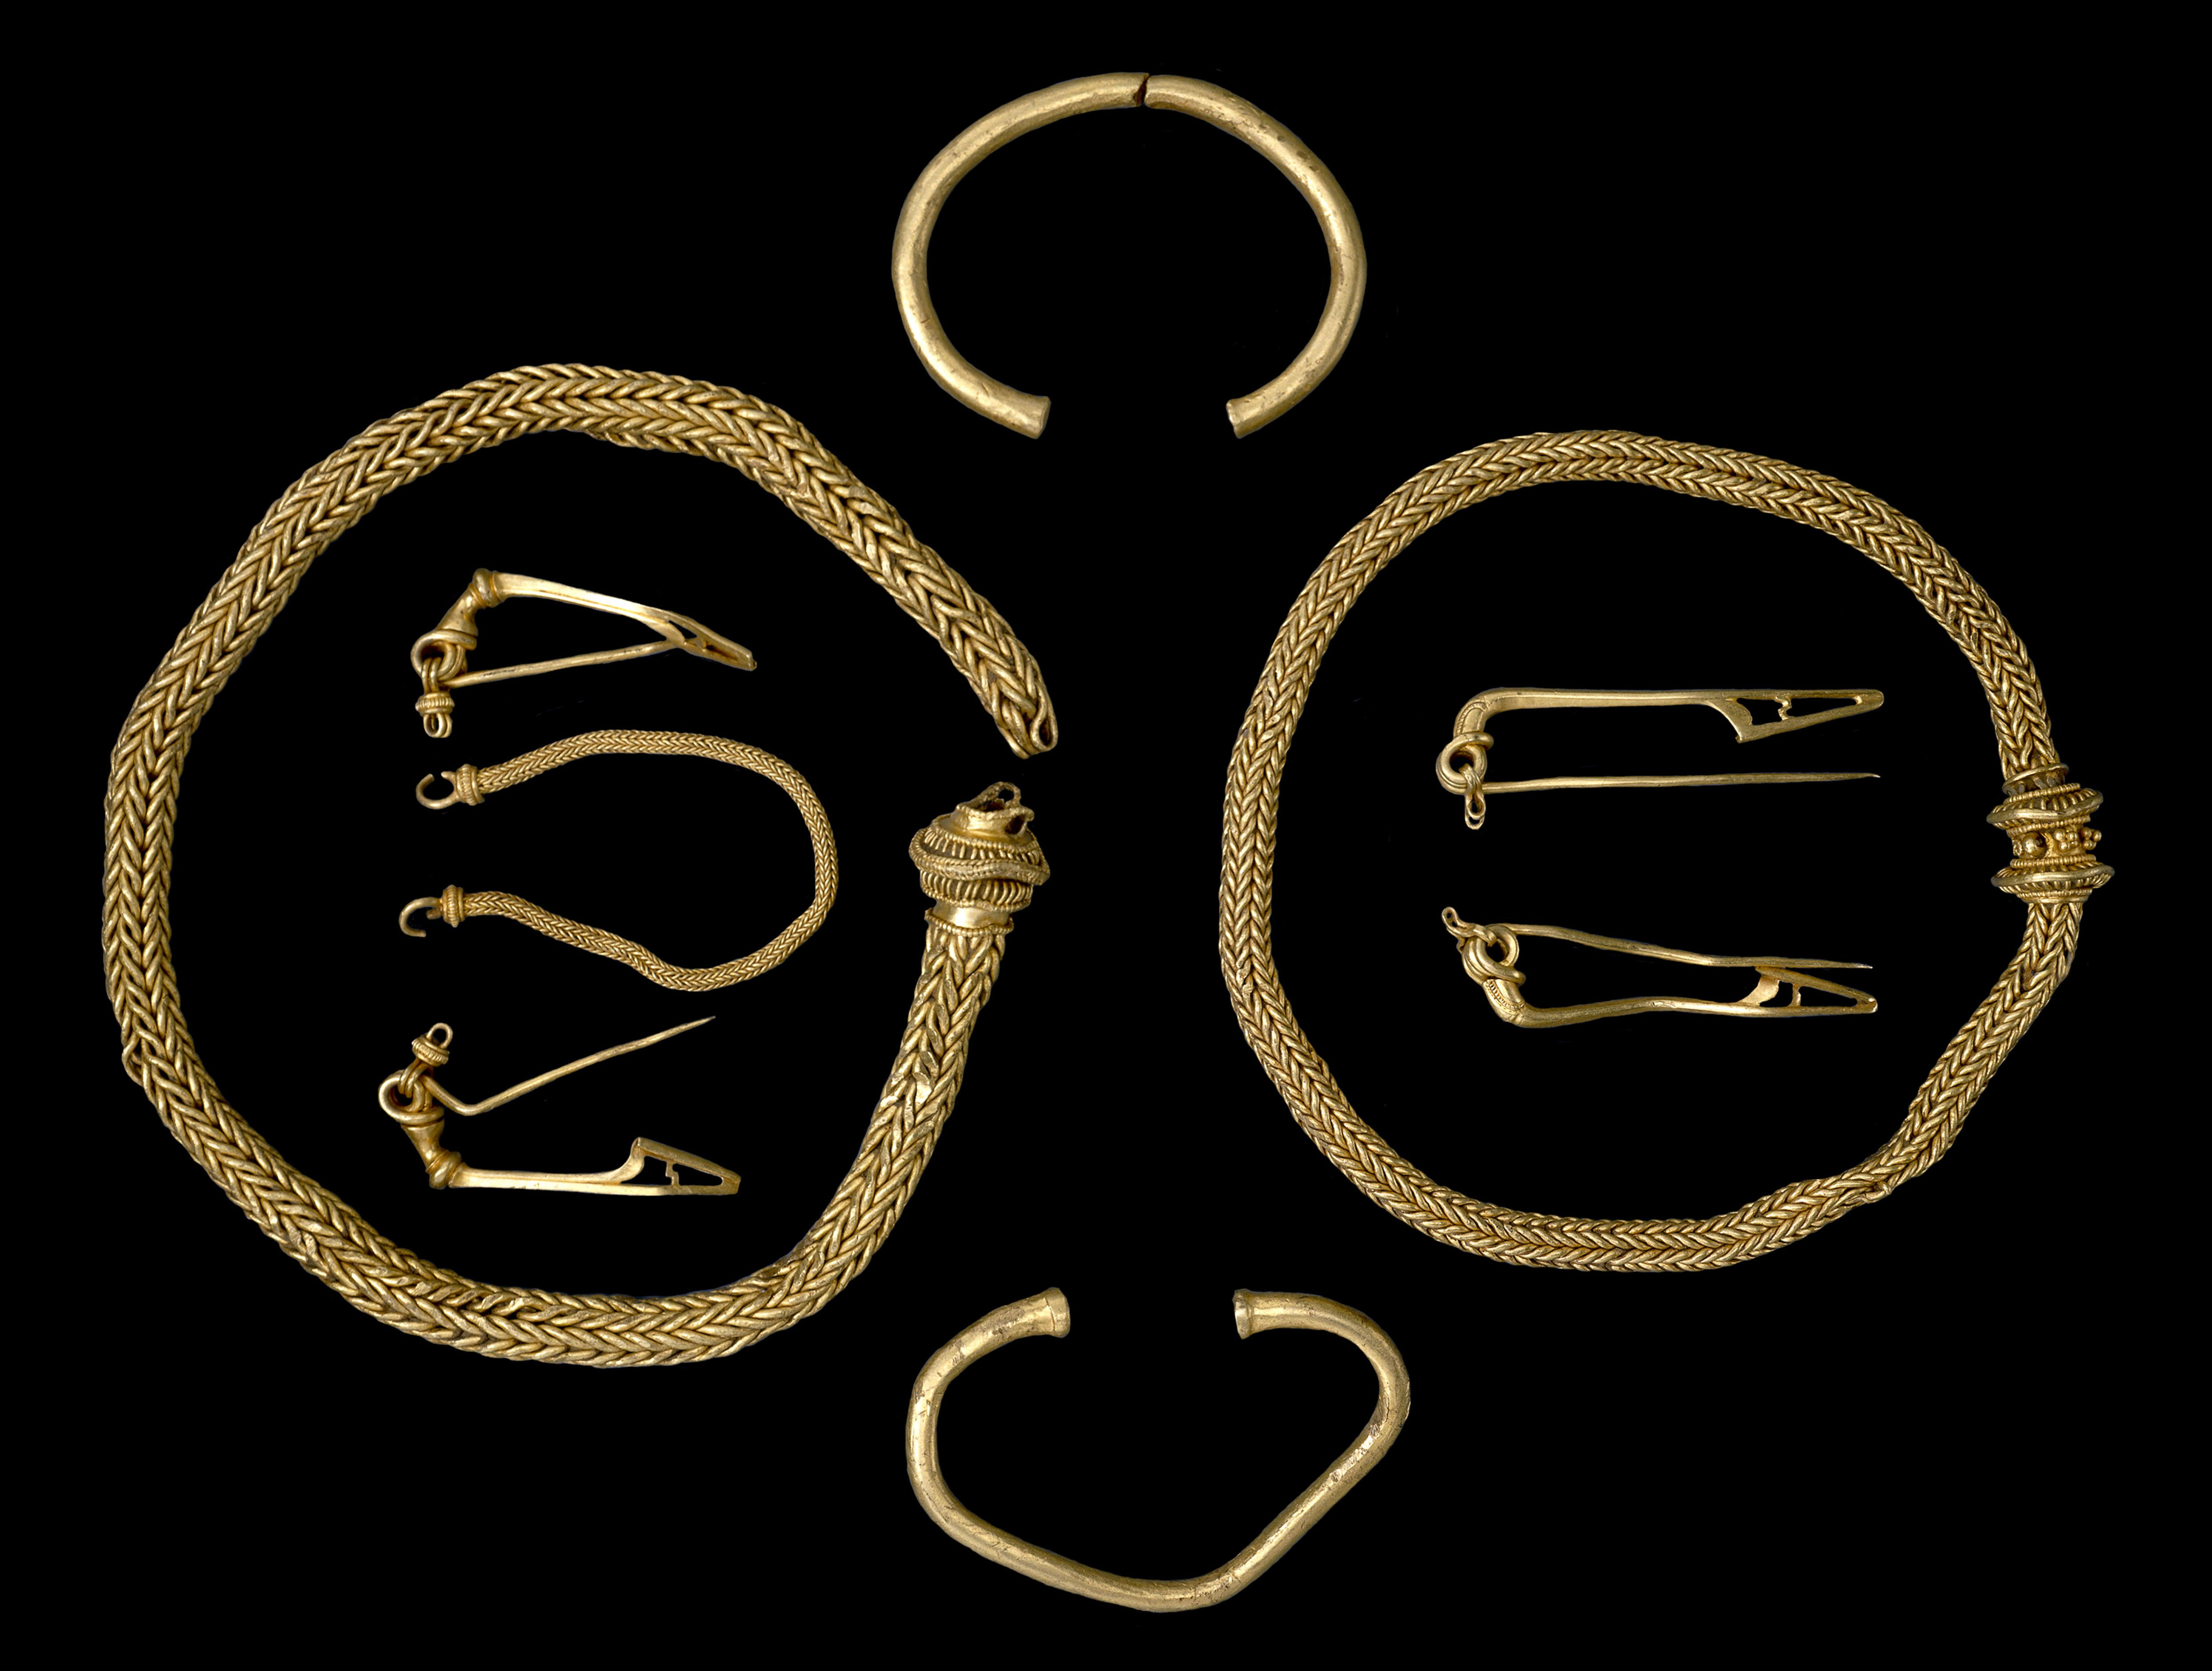 Iron Age Hoard England 1 Brooch 1 Gold Knotenfibeln Bow Found